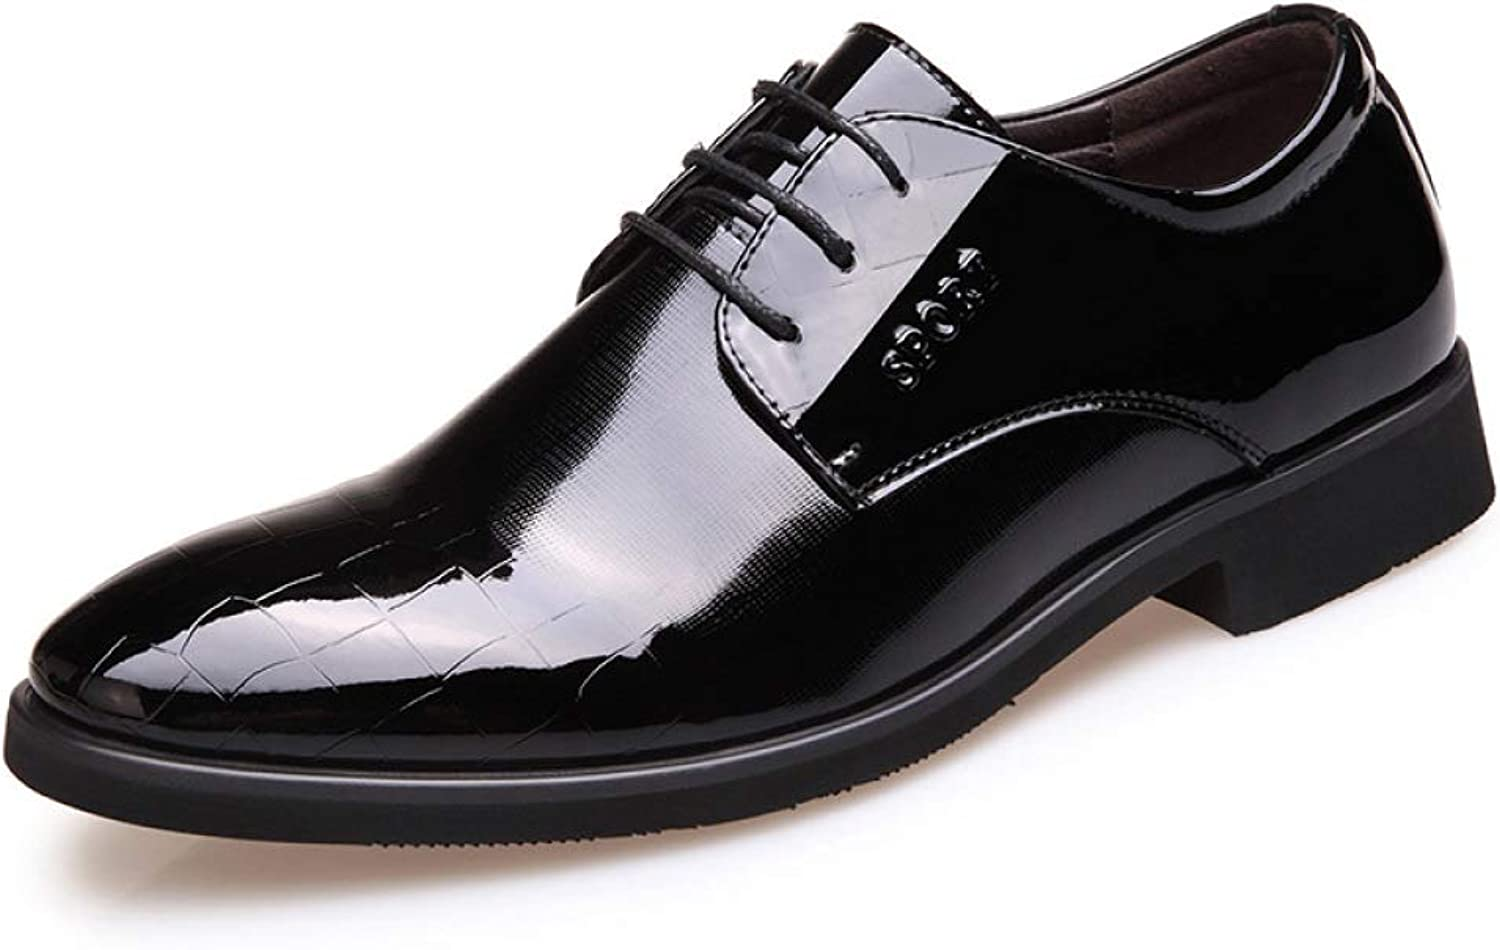 Shiney Men's shoes Business Dress Wedding England Pointed Leather Casual Dress Office Career